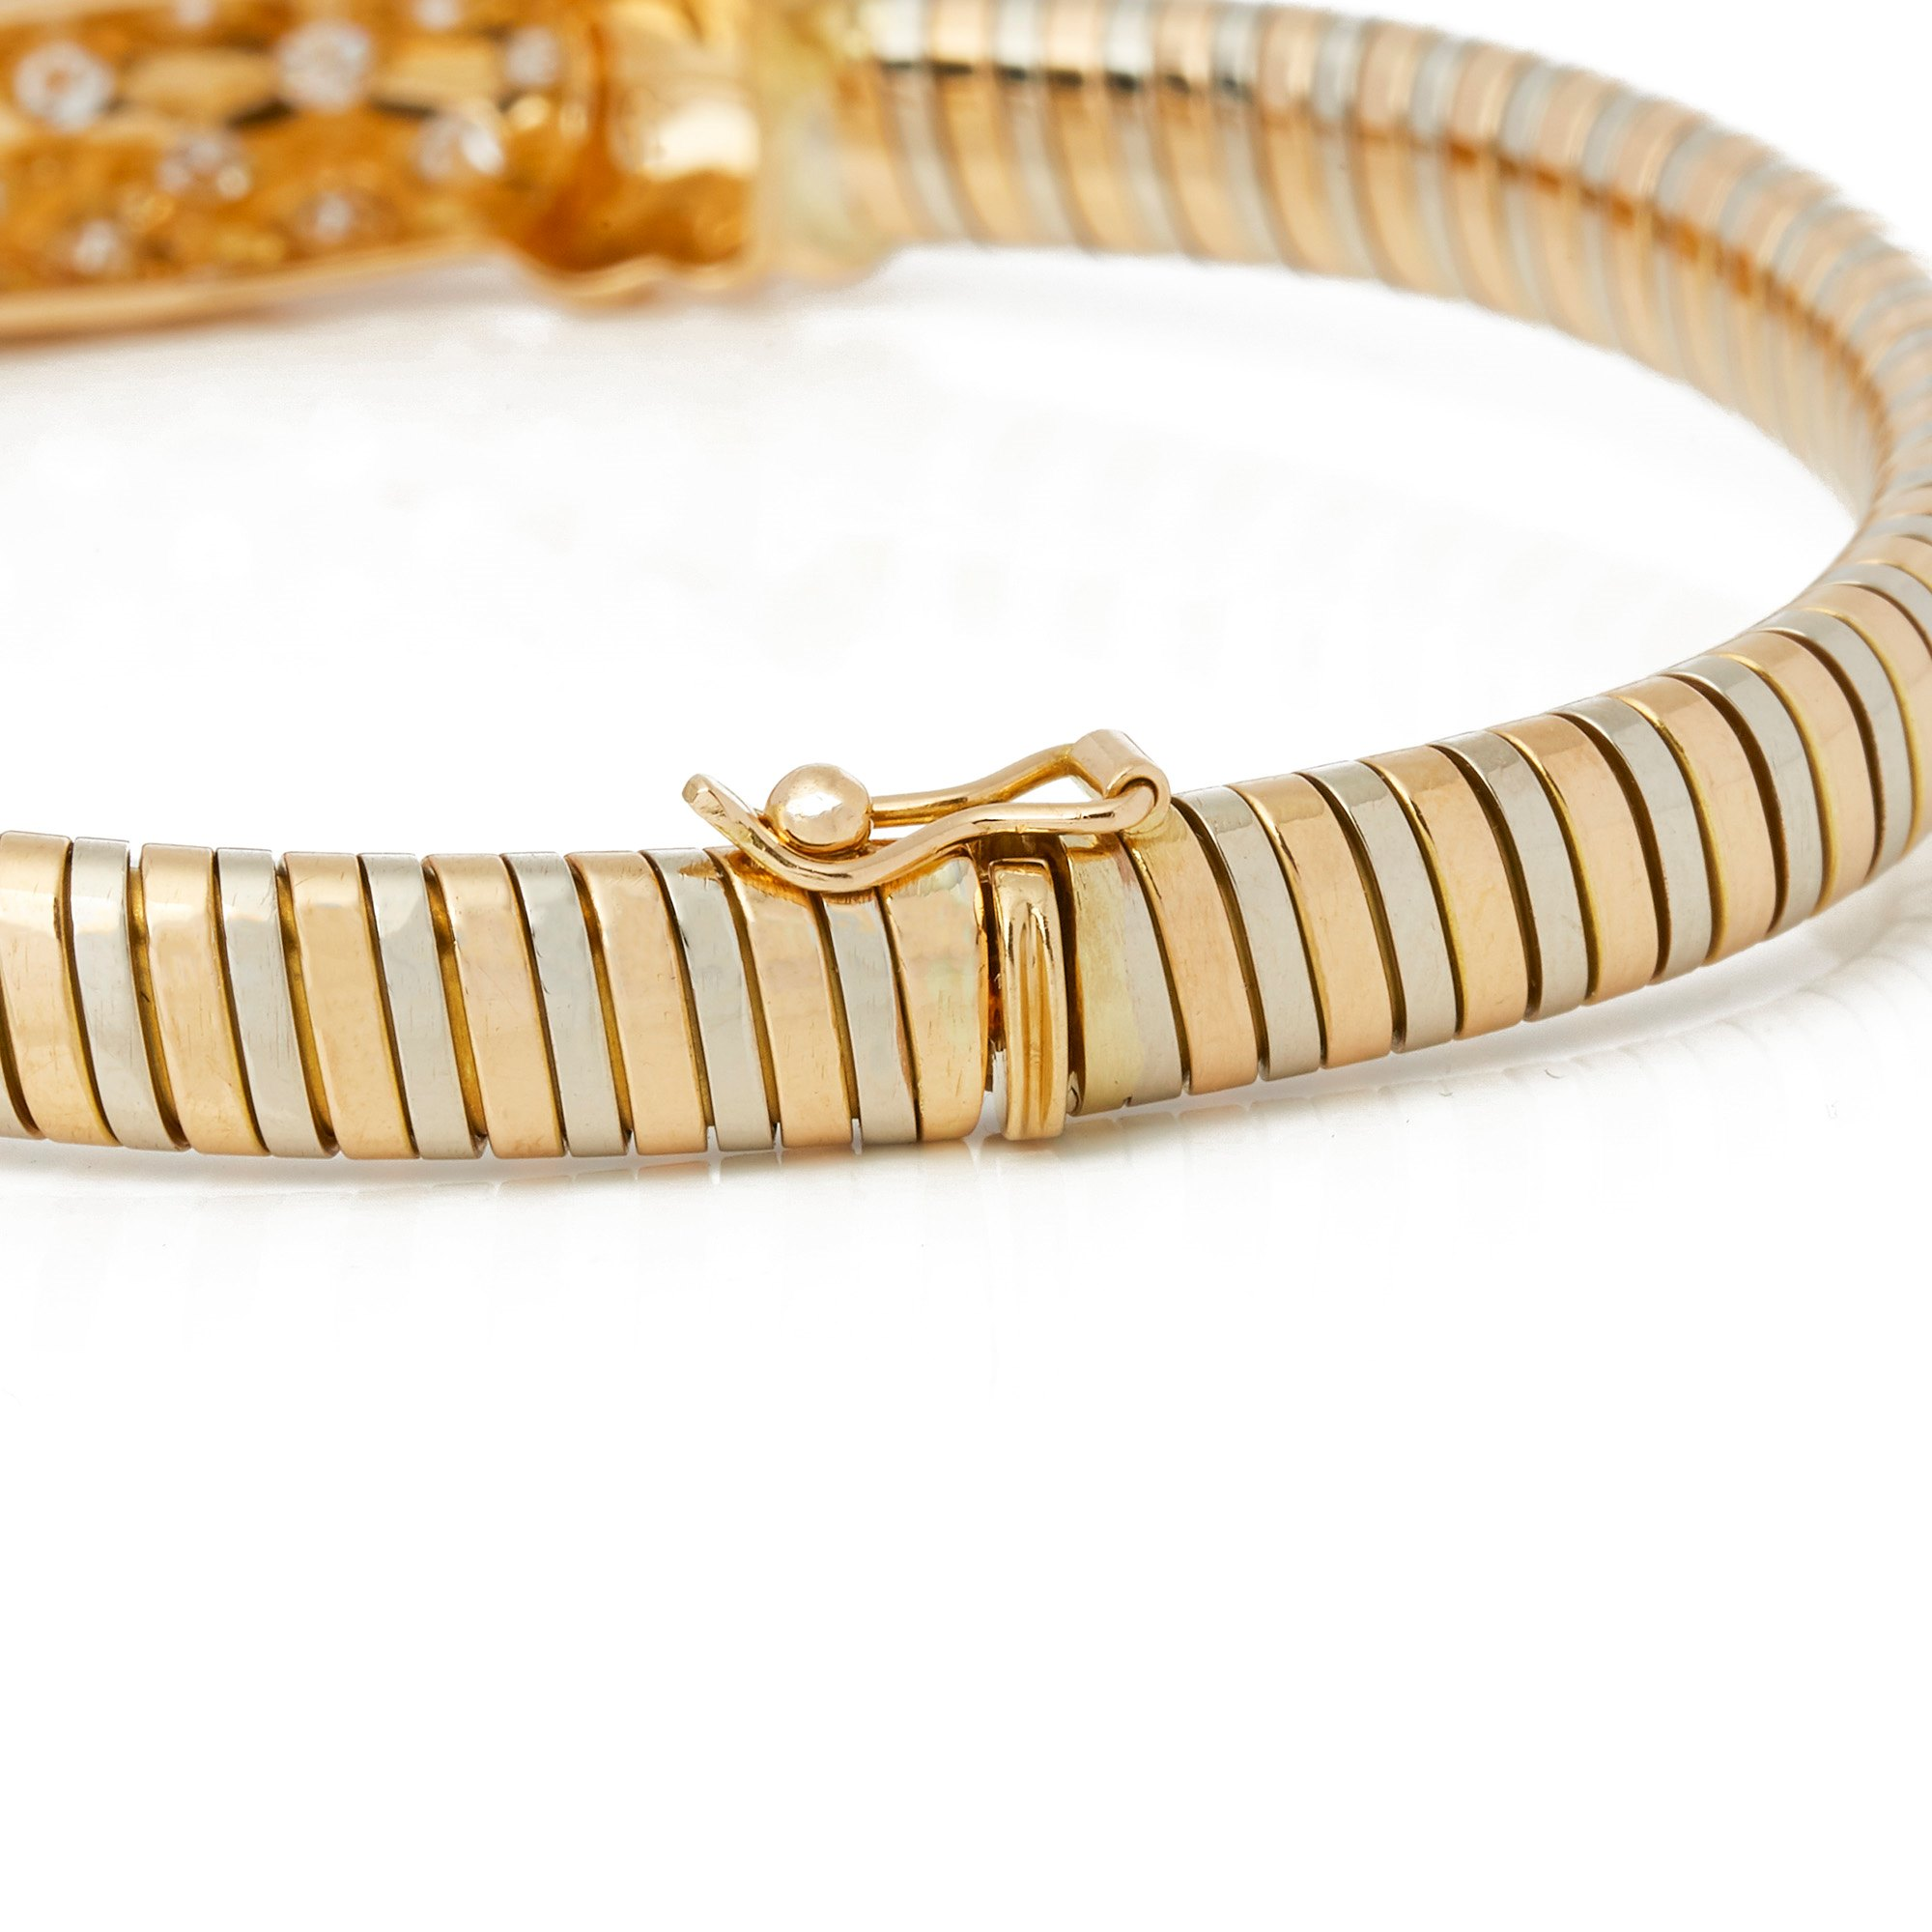 Cartier 18k Yellow Gold Turbogas Bracelet